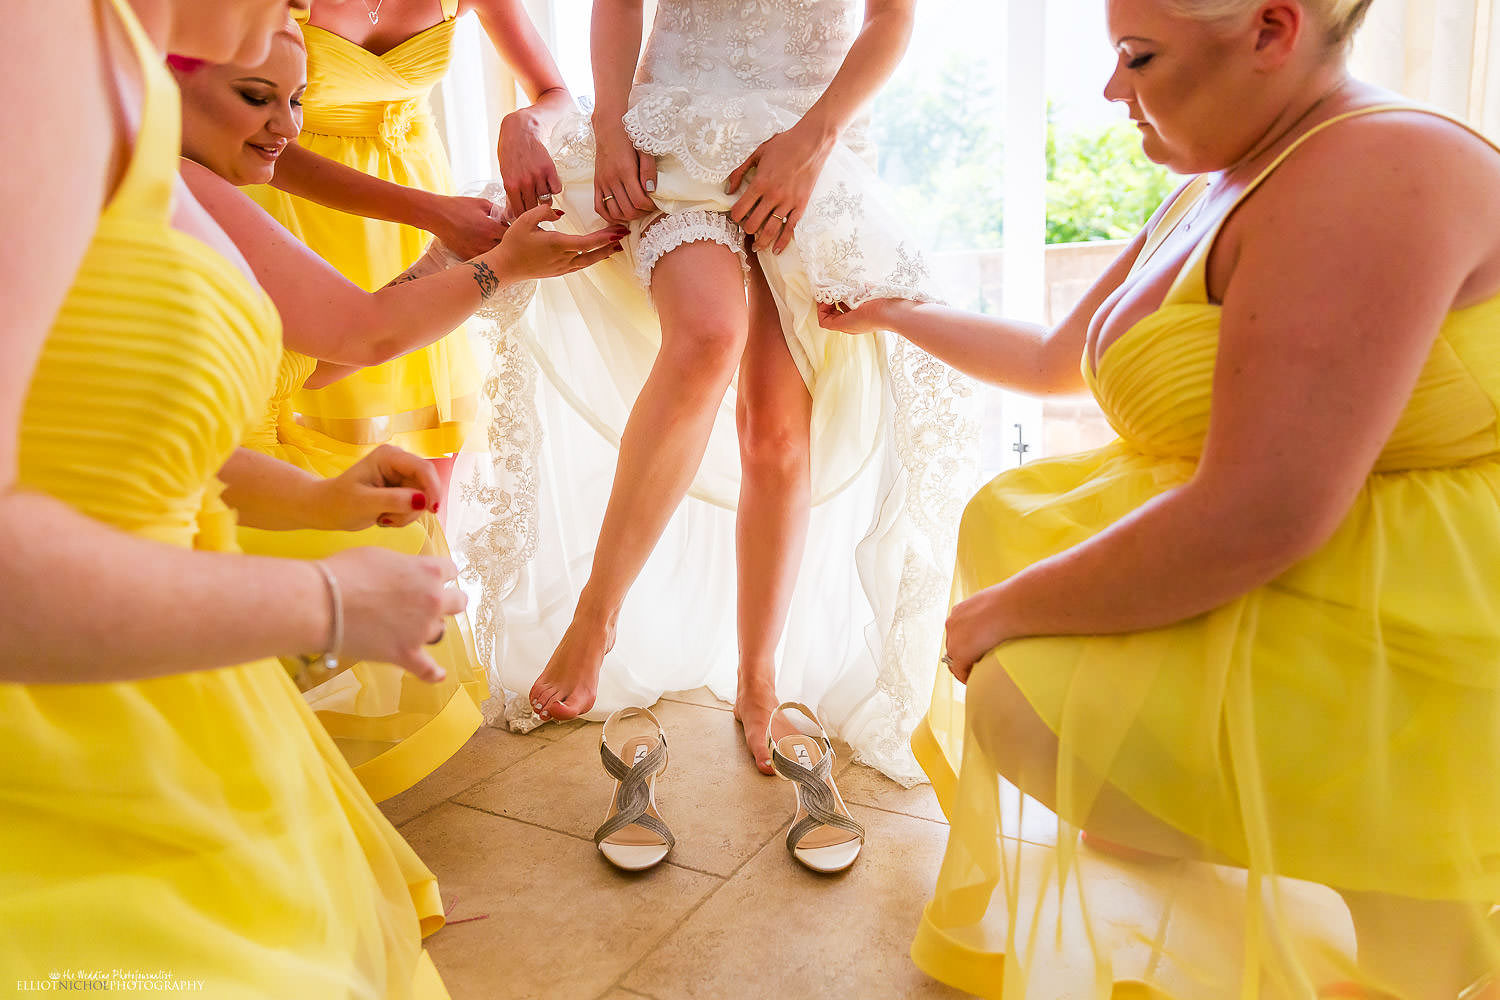 Bride being helped into her wedding dress by her bridesmaids.